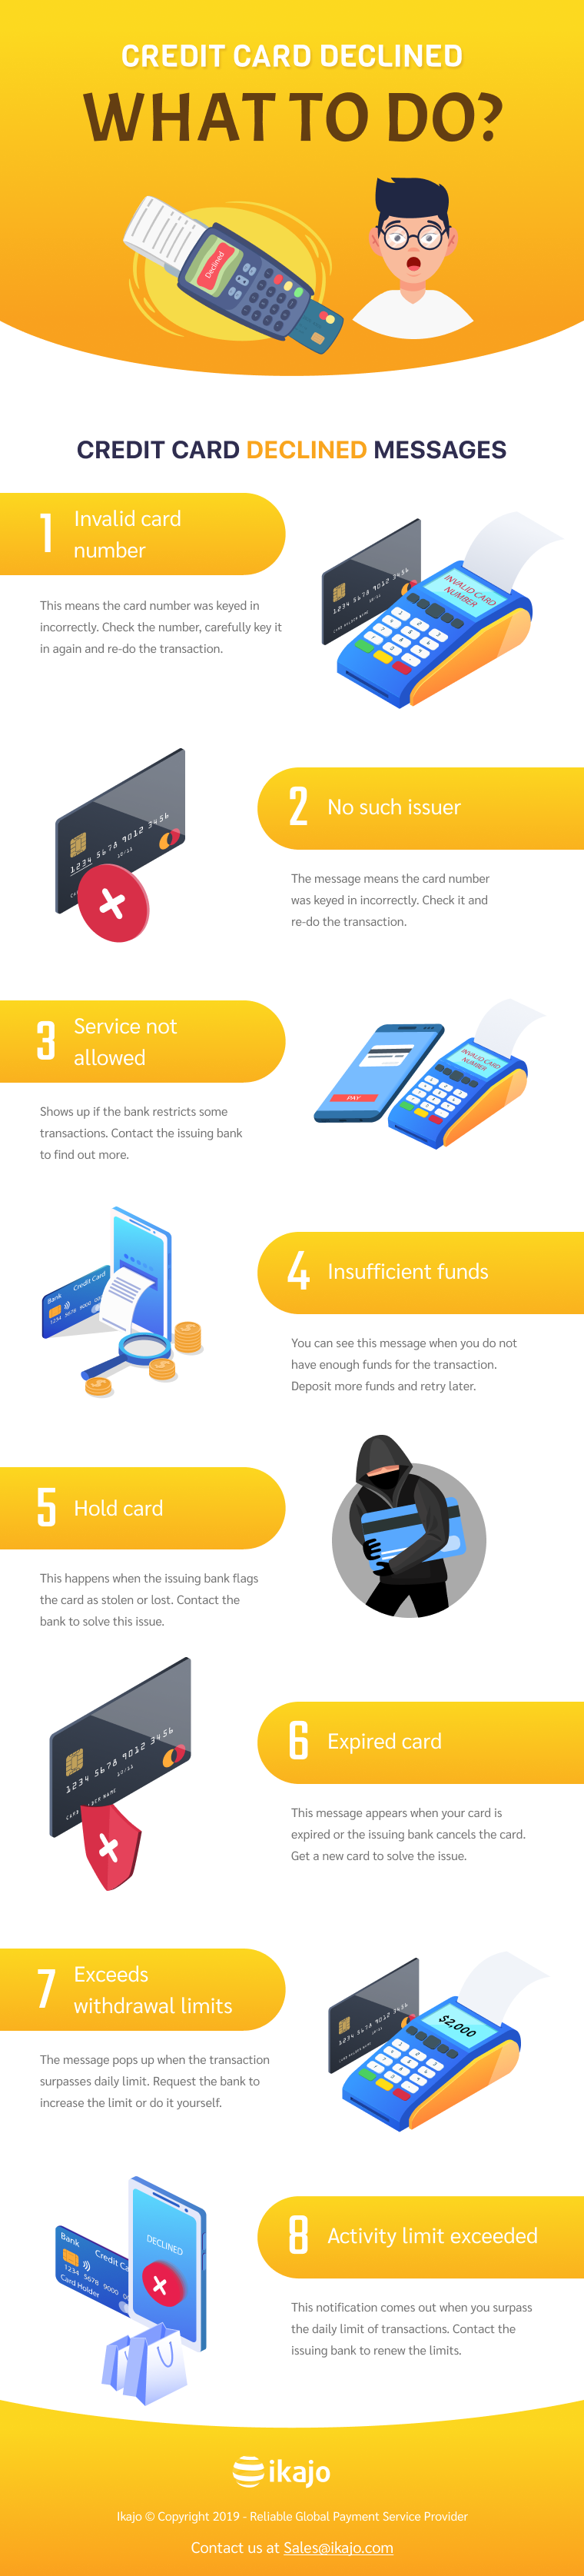 credit card declined messages infographic